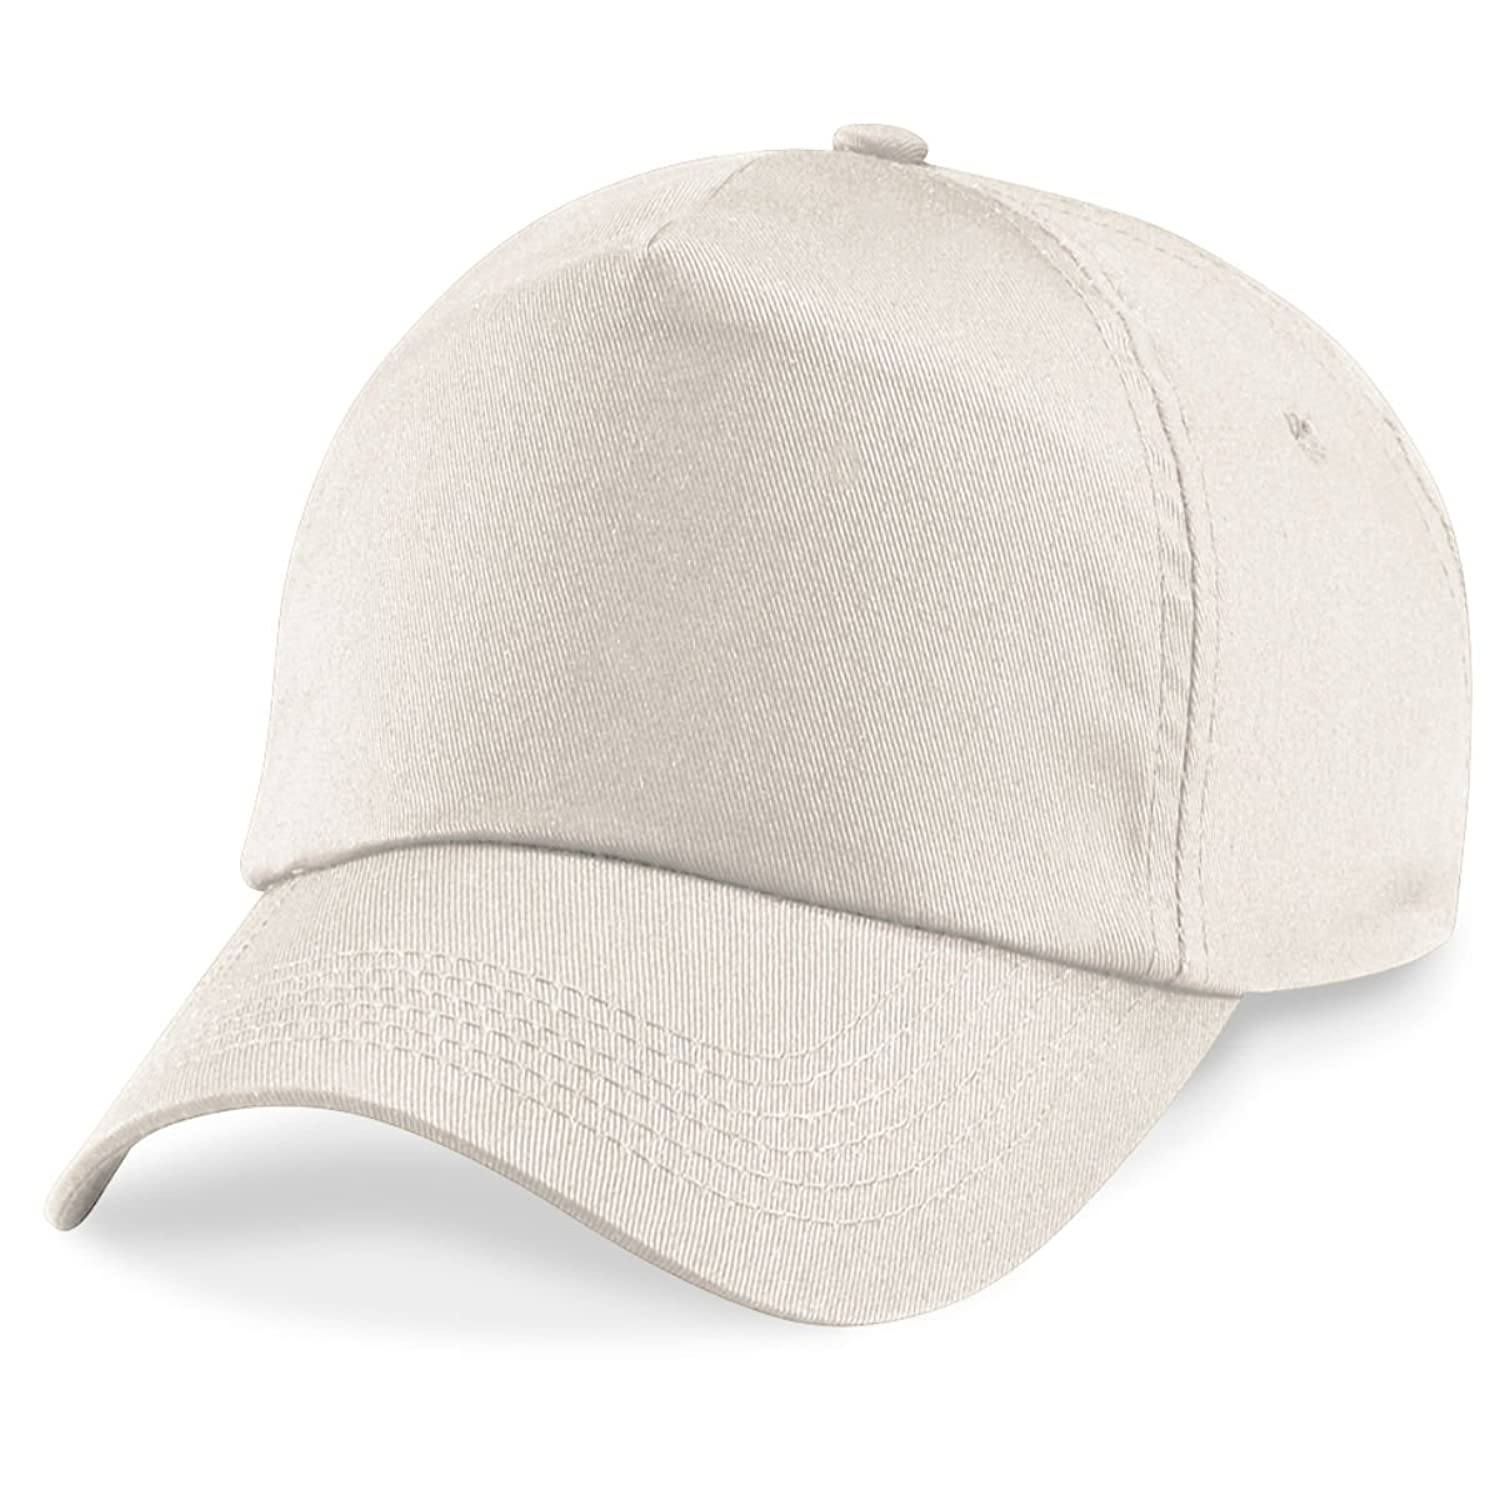 Beechfield 5 panel unlined cotton cap in Sand